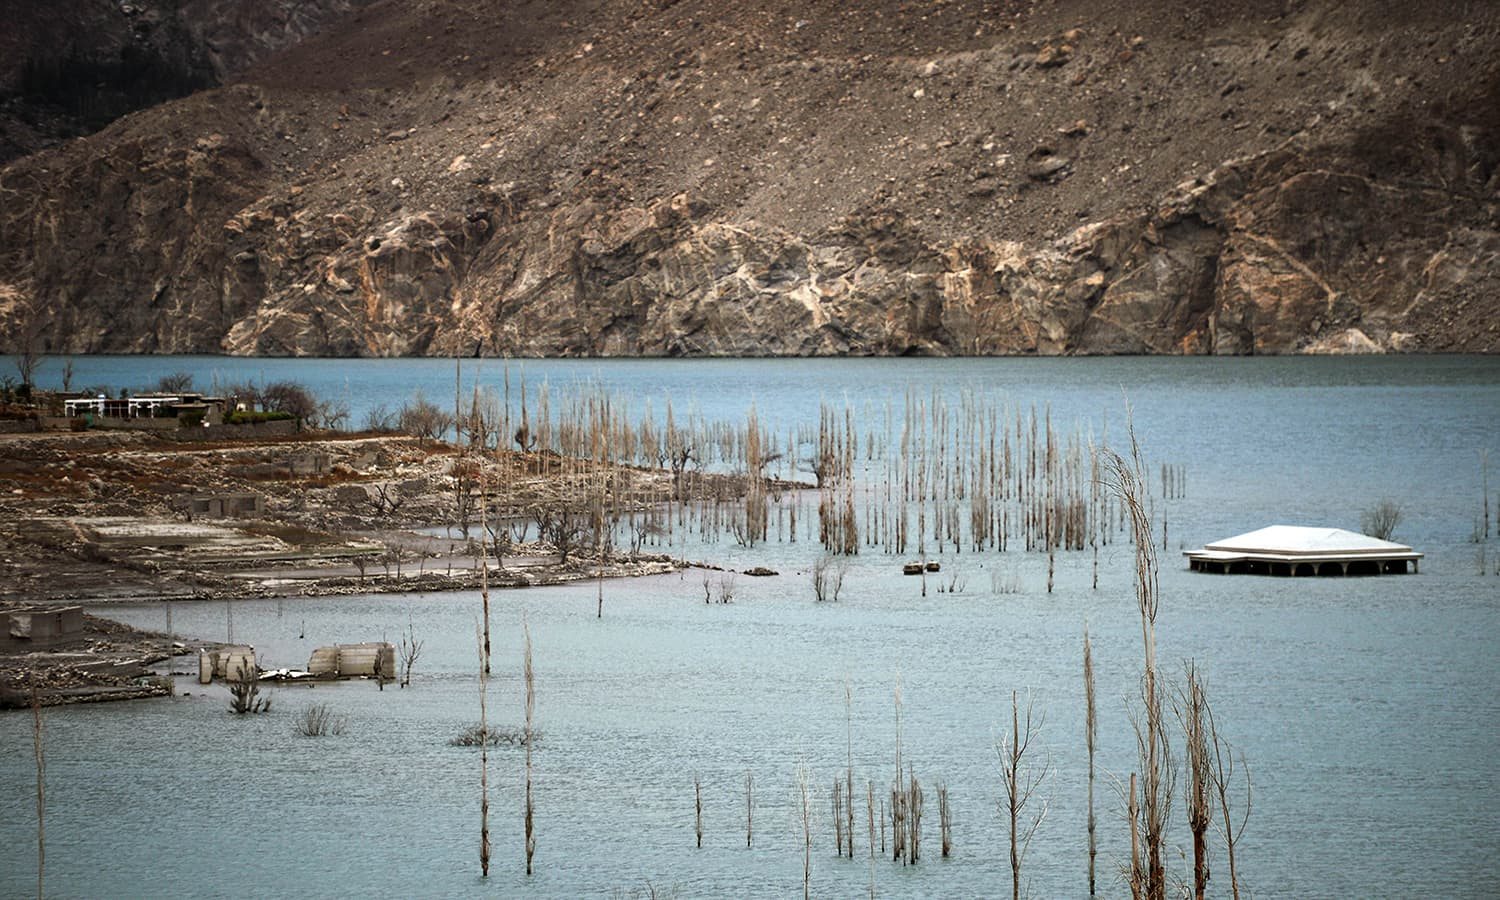 A partially-submerged house is seen in Attabad Lake, which was formed following a landslide in January 2010, in Pakistan's Gojal Valley. — AFP